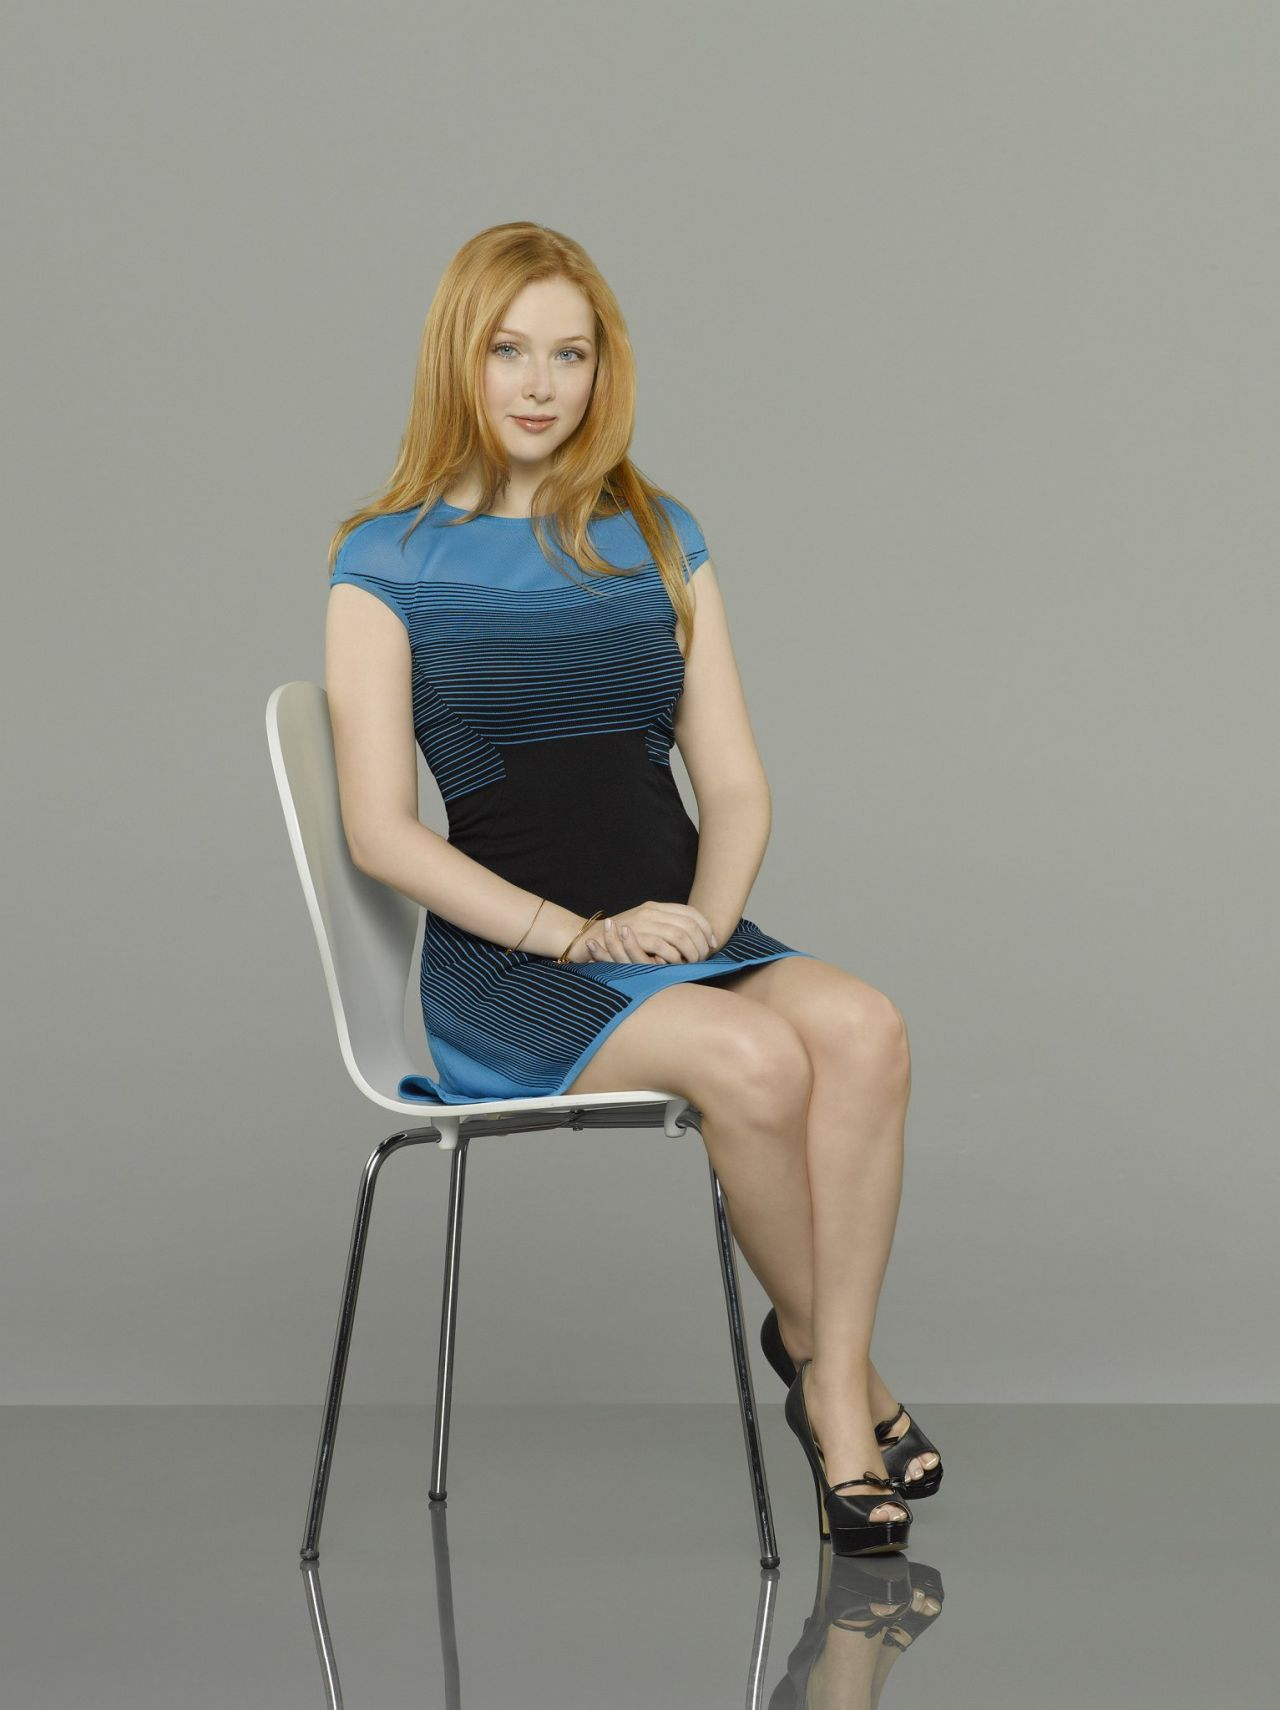 Molly Quinn - CASTLE (TV Series) Mid Season 6 Promo Photos